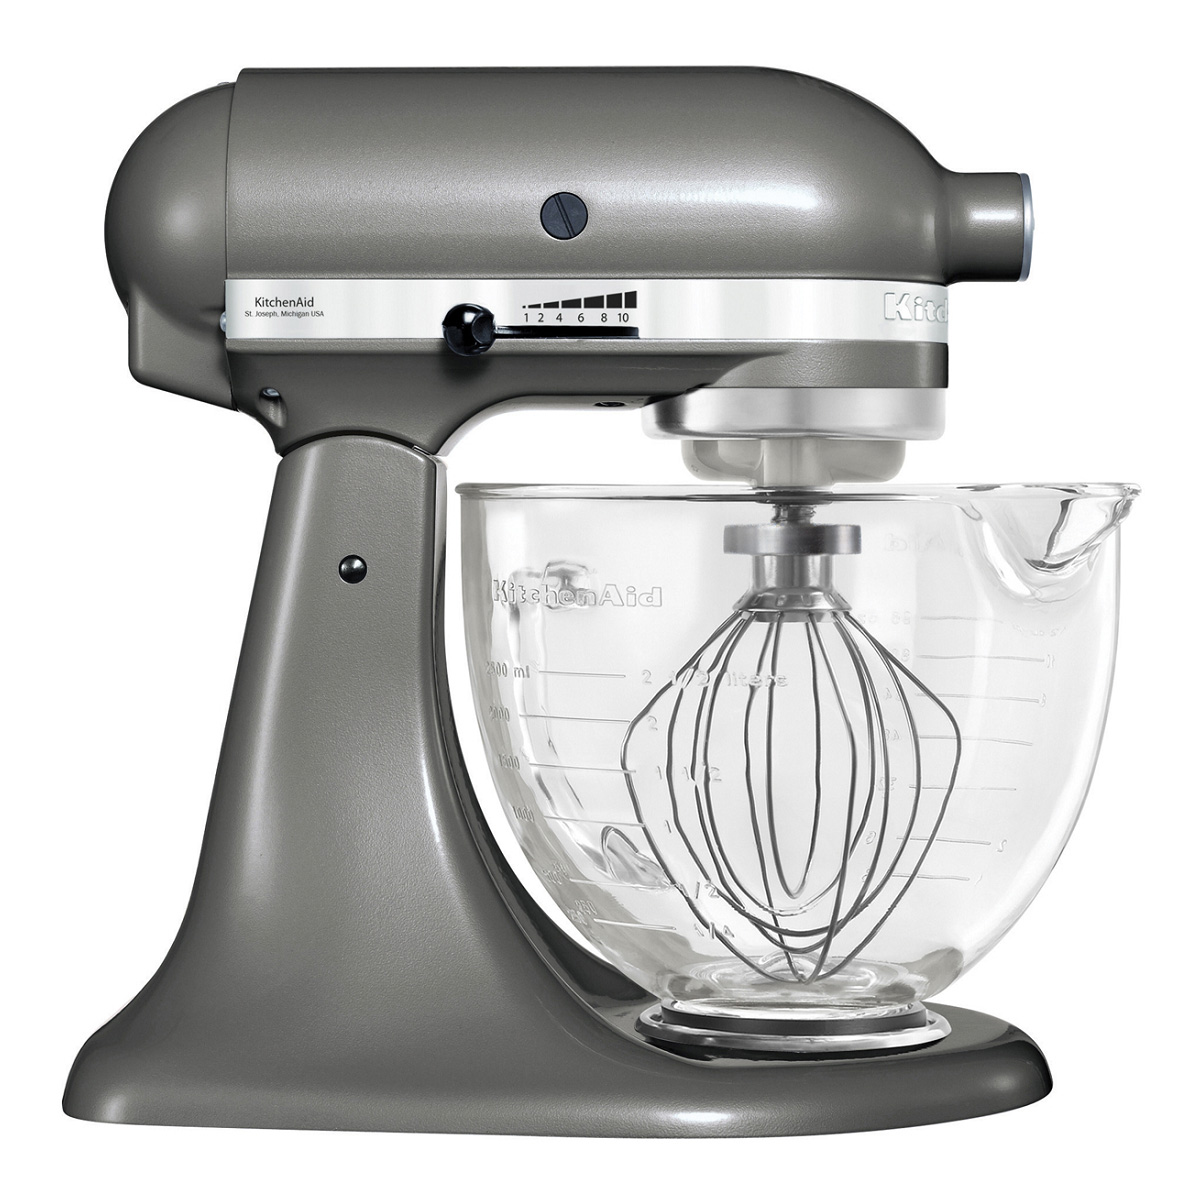 KitchenAid 91135 KSM156 Stand Mixer